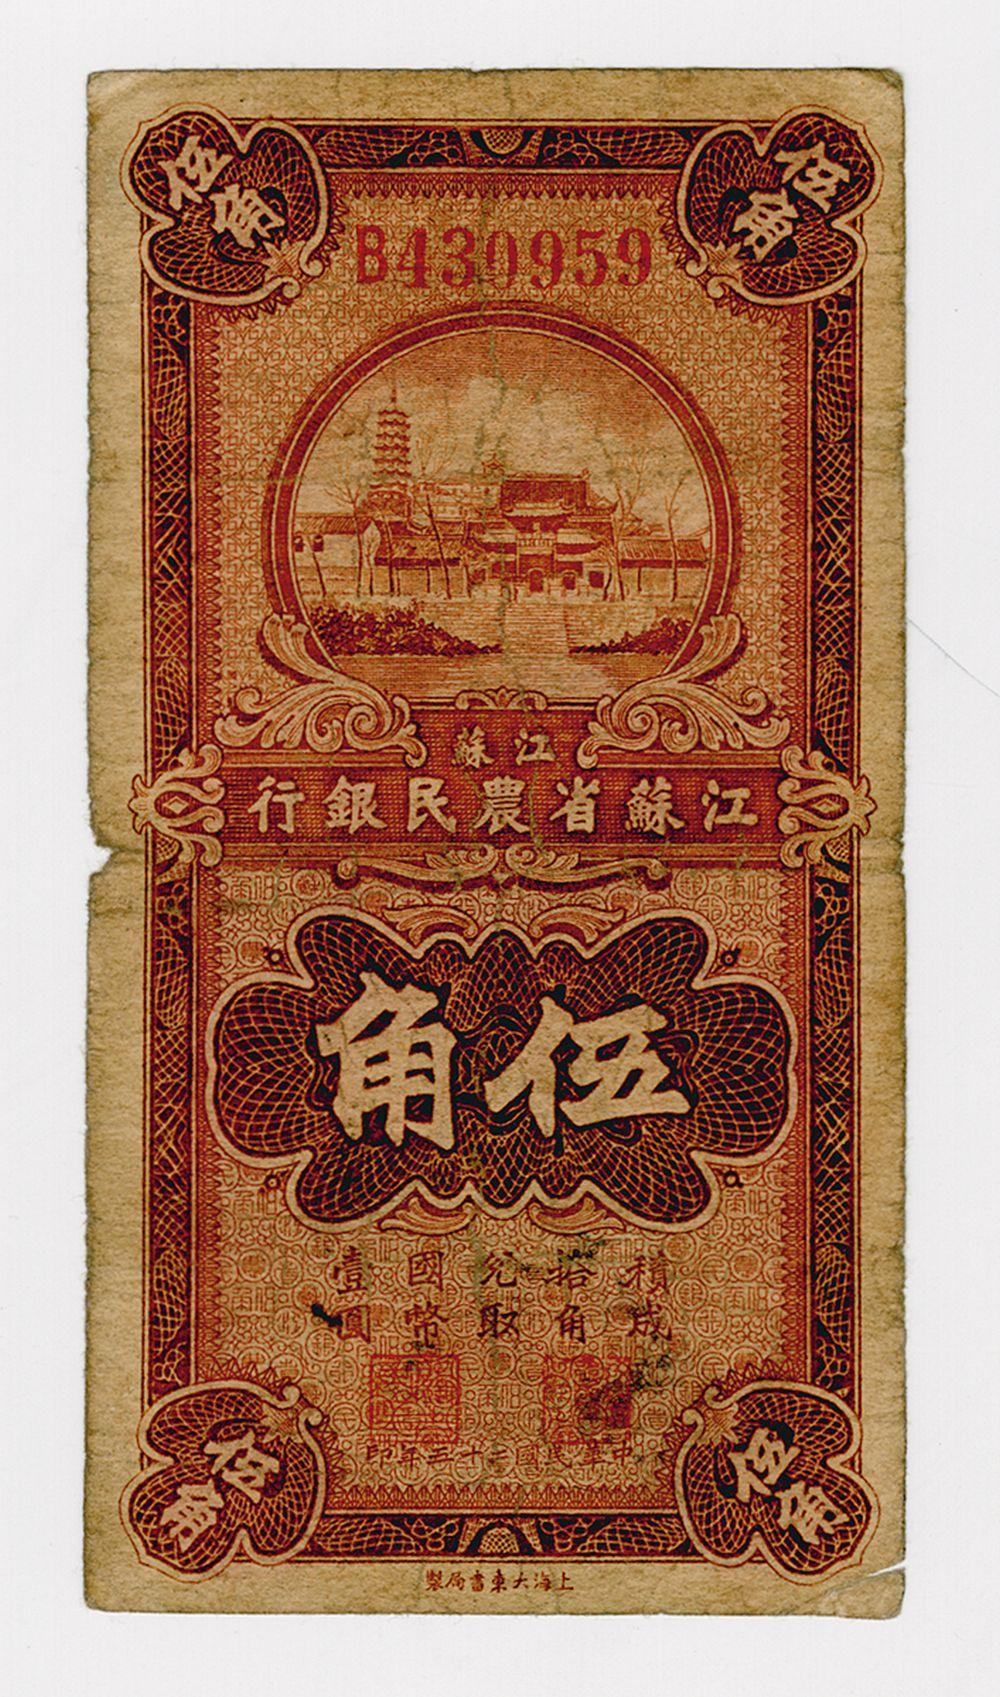 Kiangsu Farmers Bank, 1936 issued Banknote.